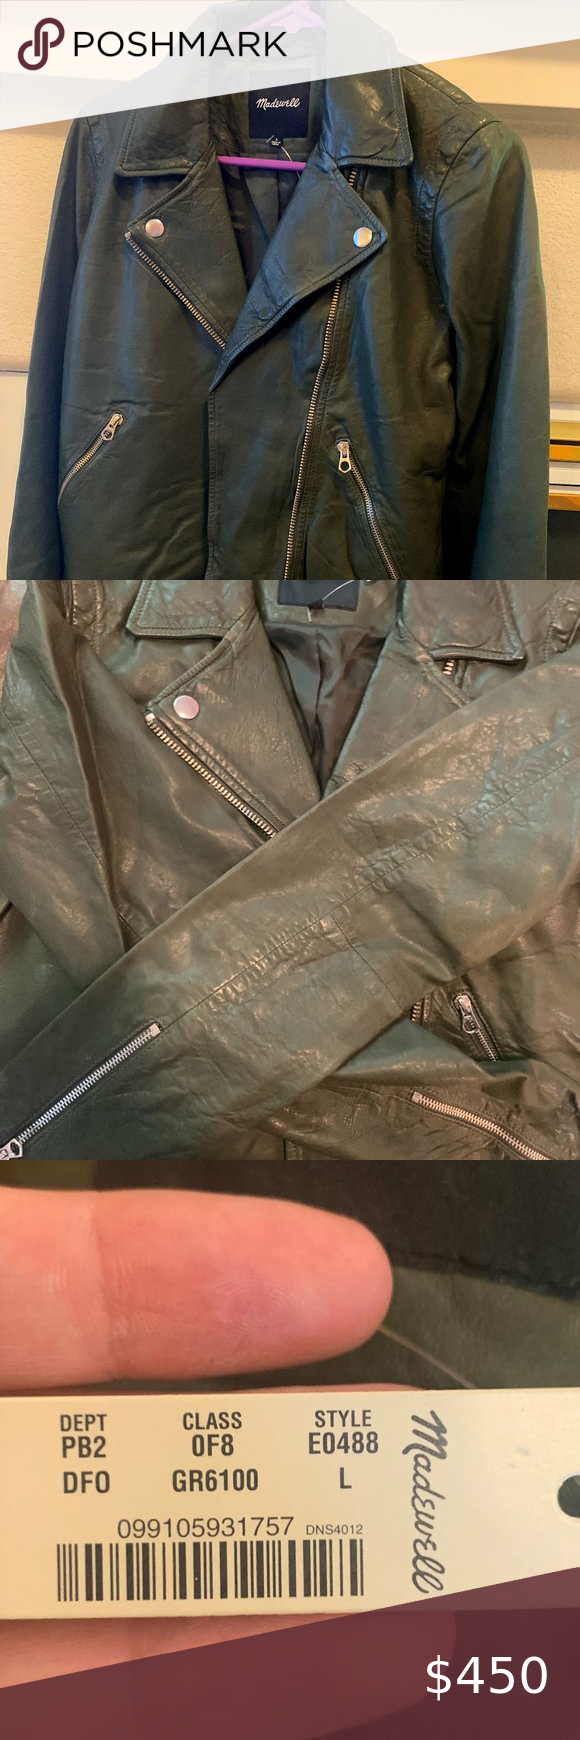 Madewell Forest Green Leather Jacket Green Leather Jackets Leather Jacket Brands Leather Jacket [ 1740 x 580 Pixel ]